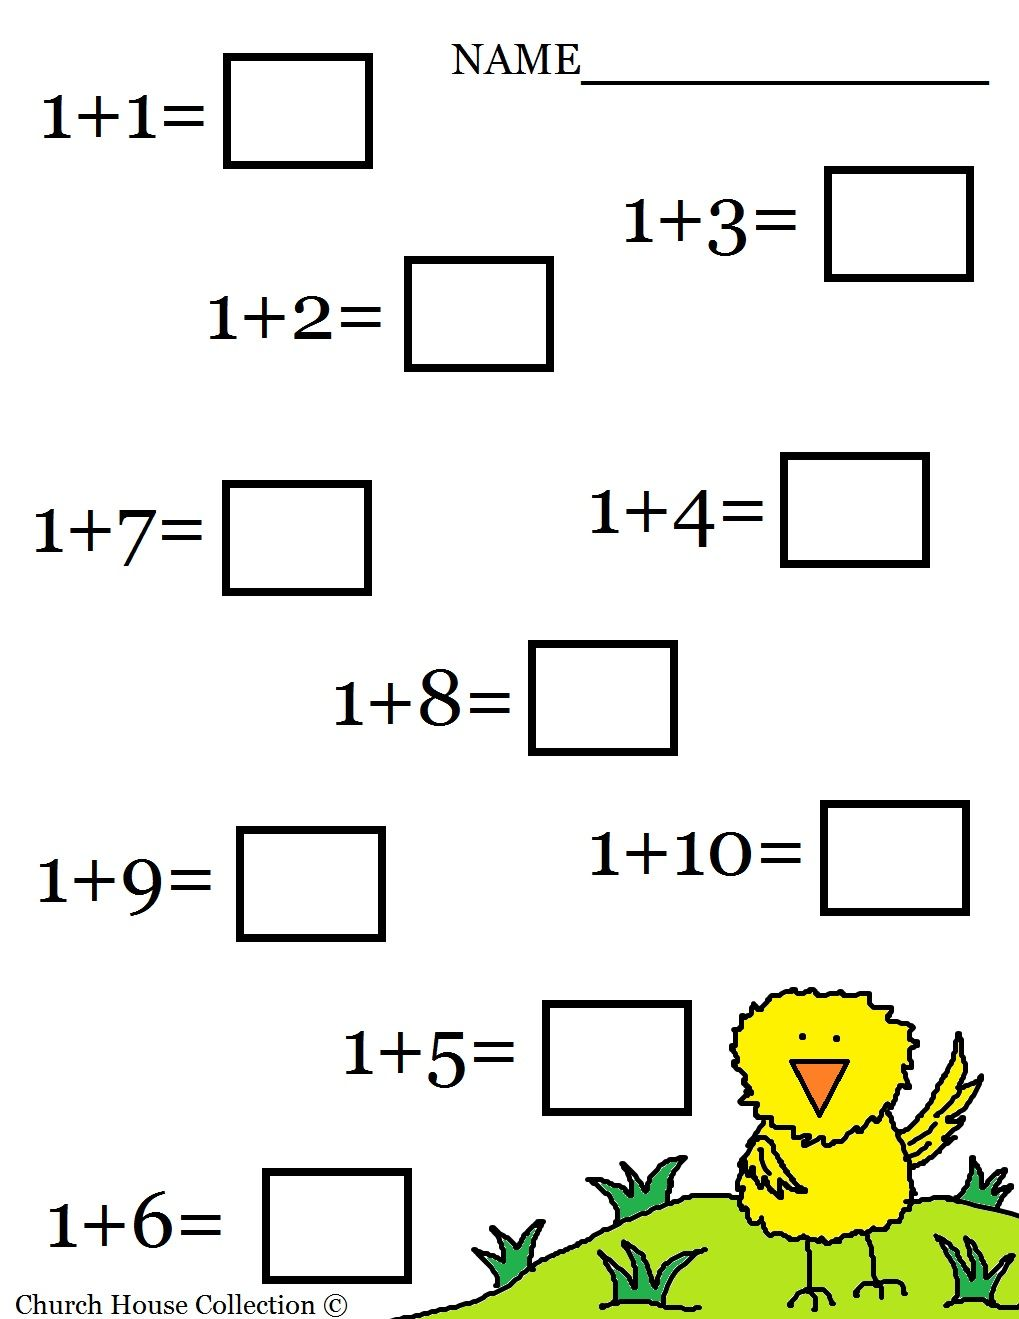 Aldiablosus  Pleasing  Images About Worksheets  Math On Pinterest  Math Sheets  With Outstanding  Images About Worksheets  Math On Pinterest  Math Sheets Math Worksheets For Kindergarten And Simple Addition With Breathtaking Number Matching Worksheets  Also Fraction Worksheet For Grade  In Addition Number Tracing Worksheet  And Prefix Sub Worksheets As Well As Worksheet Adding Fractions Additionally Or Words Phonics Worksheet From Pinterestcom With Aldiablosus  Outstanding  Images About Worksheets  Math On Pinterest  Math Sheets  With Breathtaking  Images About Worksheets  Math On Pinterest  Math Sheets Math Worksheets For Kindergarten And Simple Addition And Pleasing Number Matching Worksheets  Also Fraction Worksheet For Grade  In Addition Number Tracing Worksheet  From Pinterestcom